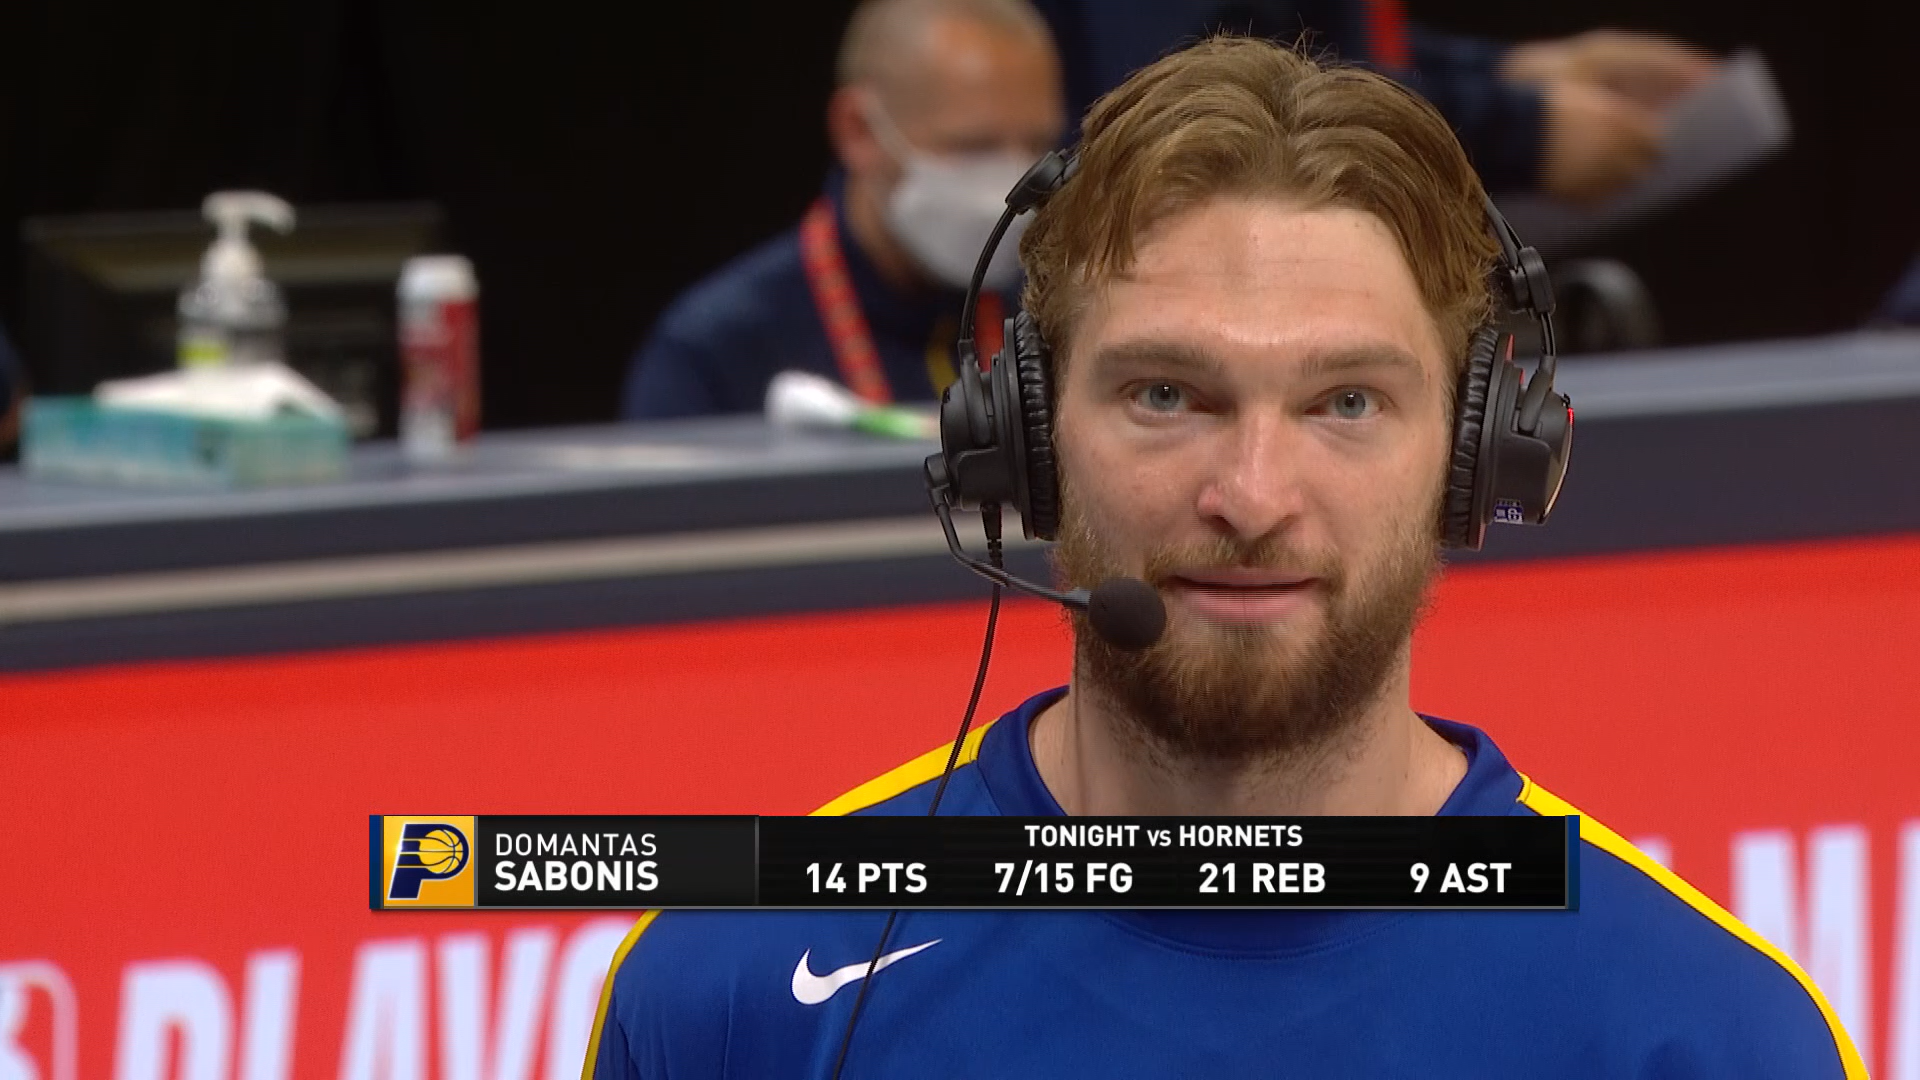 Sabonis: 'I try to impact the game in different ways'